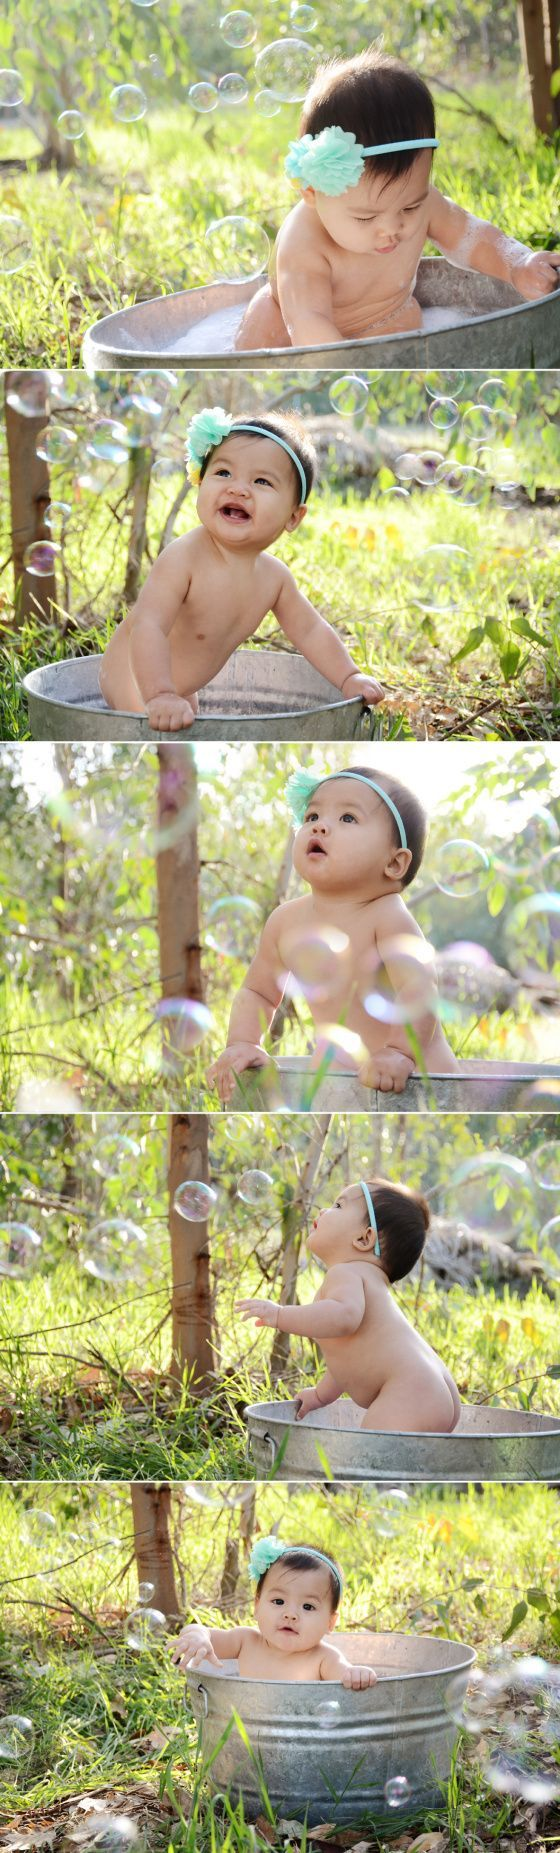 Outdoor Bubble Bath Photos 9 Month Baby Photography https://creatingforourcreator.wordpress.com/2014/04/02/amelias-9-month-bubble-bath-and-easter-photos-menifee-baby-photography/